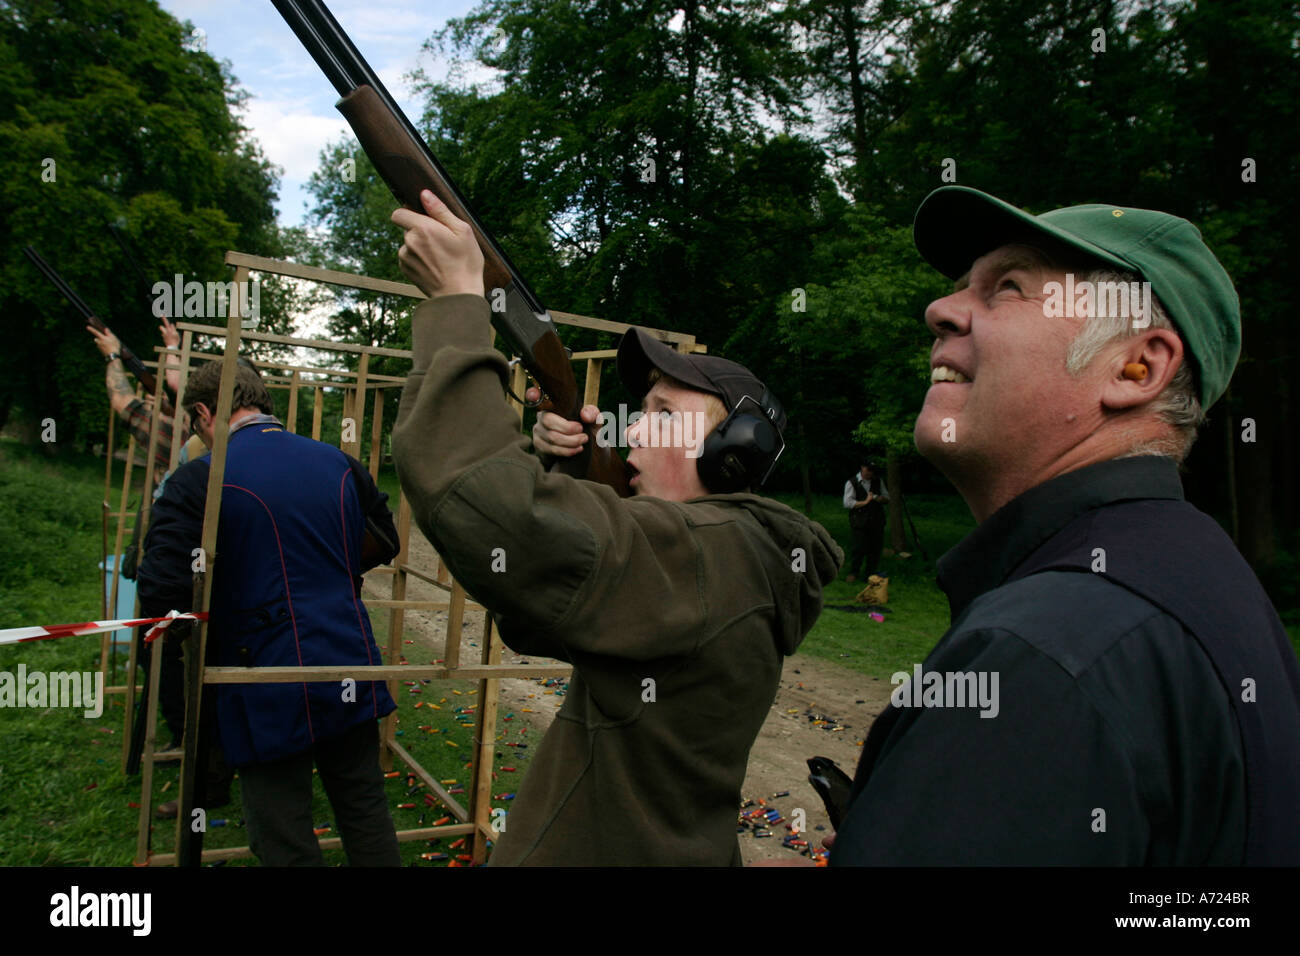 A beater encourages his son during a clay pigeon shoot organised by the Hambleden Estate - Stock Image